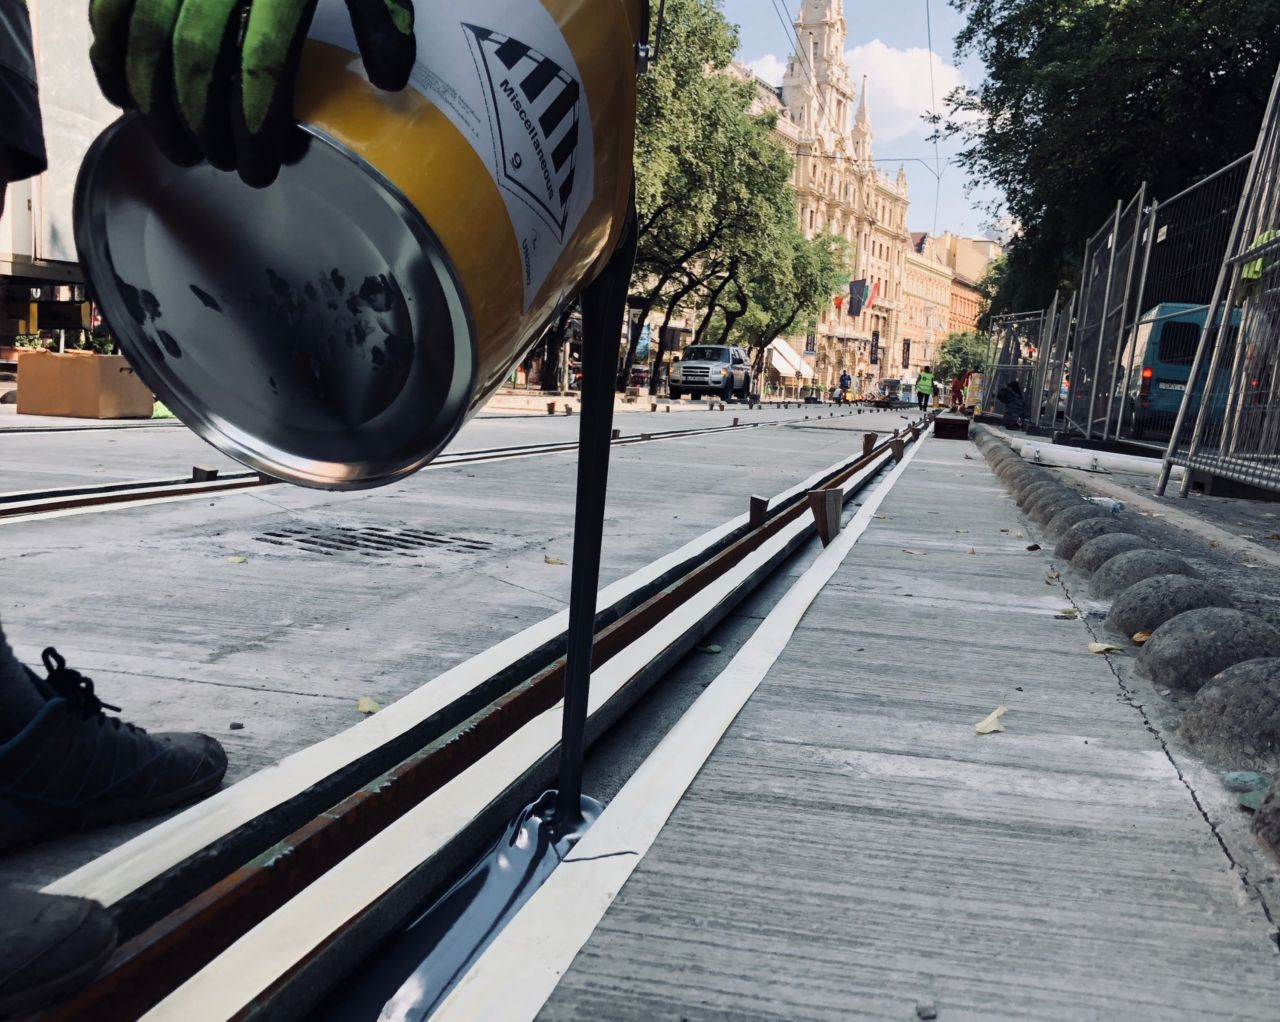 Fixing tram rail wiht epoxy grouting